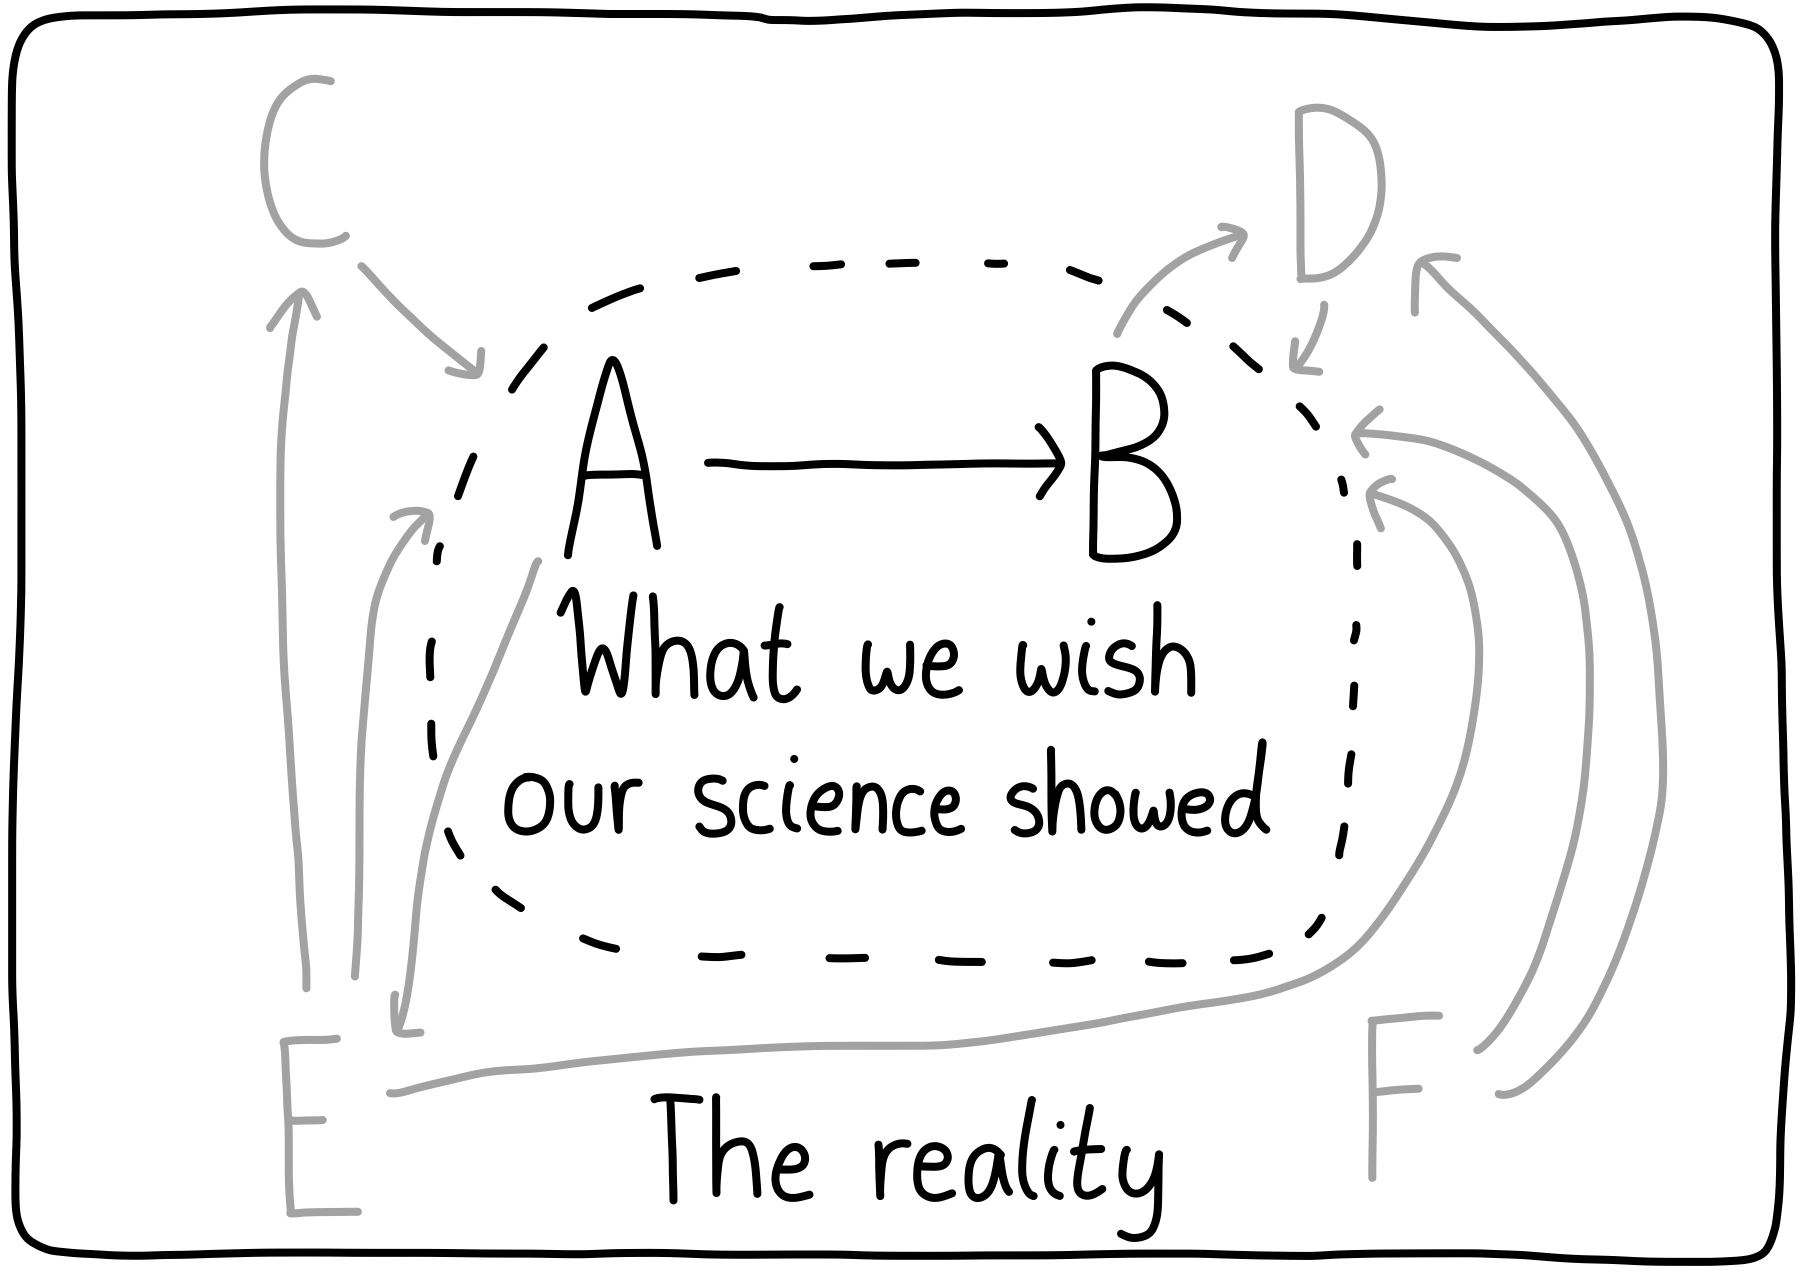 Events A, B, C, D, E, and F in a diagram with their causal links. We want to only see that A implies B, but really there are a lot of confounding causes.